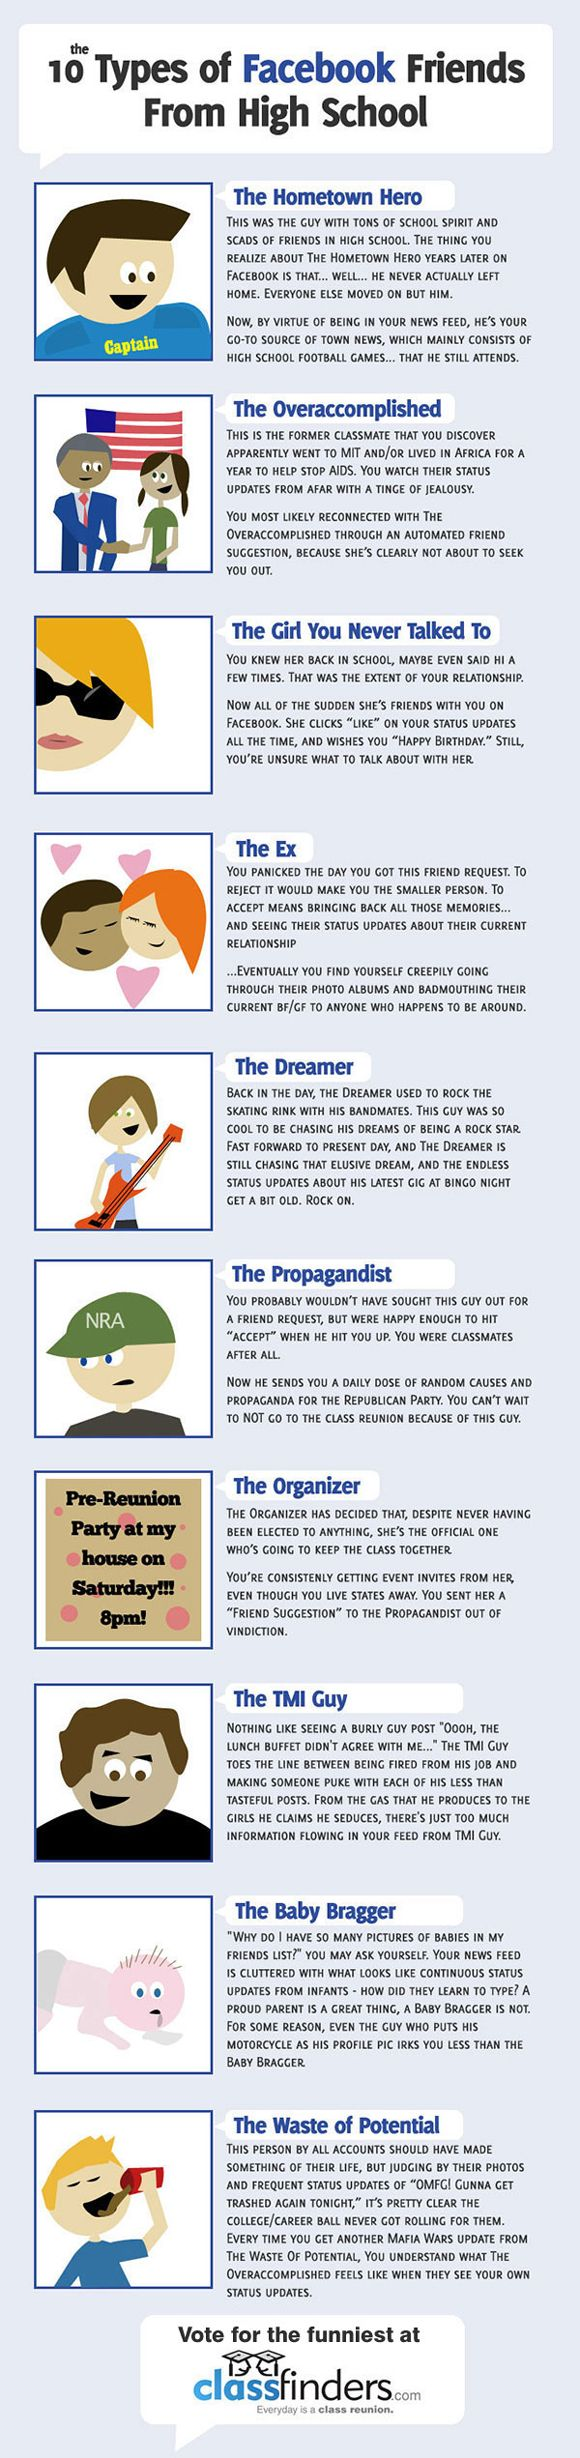 Funny facebook quotes status updates profile pics - 10 Types Of Facebook Friends Oh How I Laugh At This